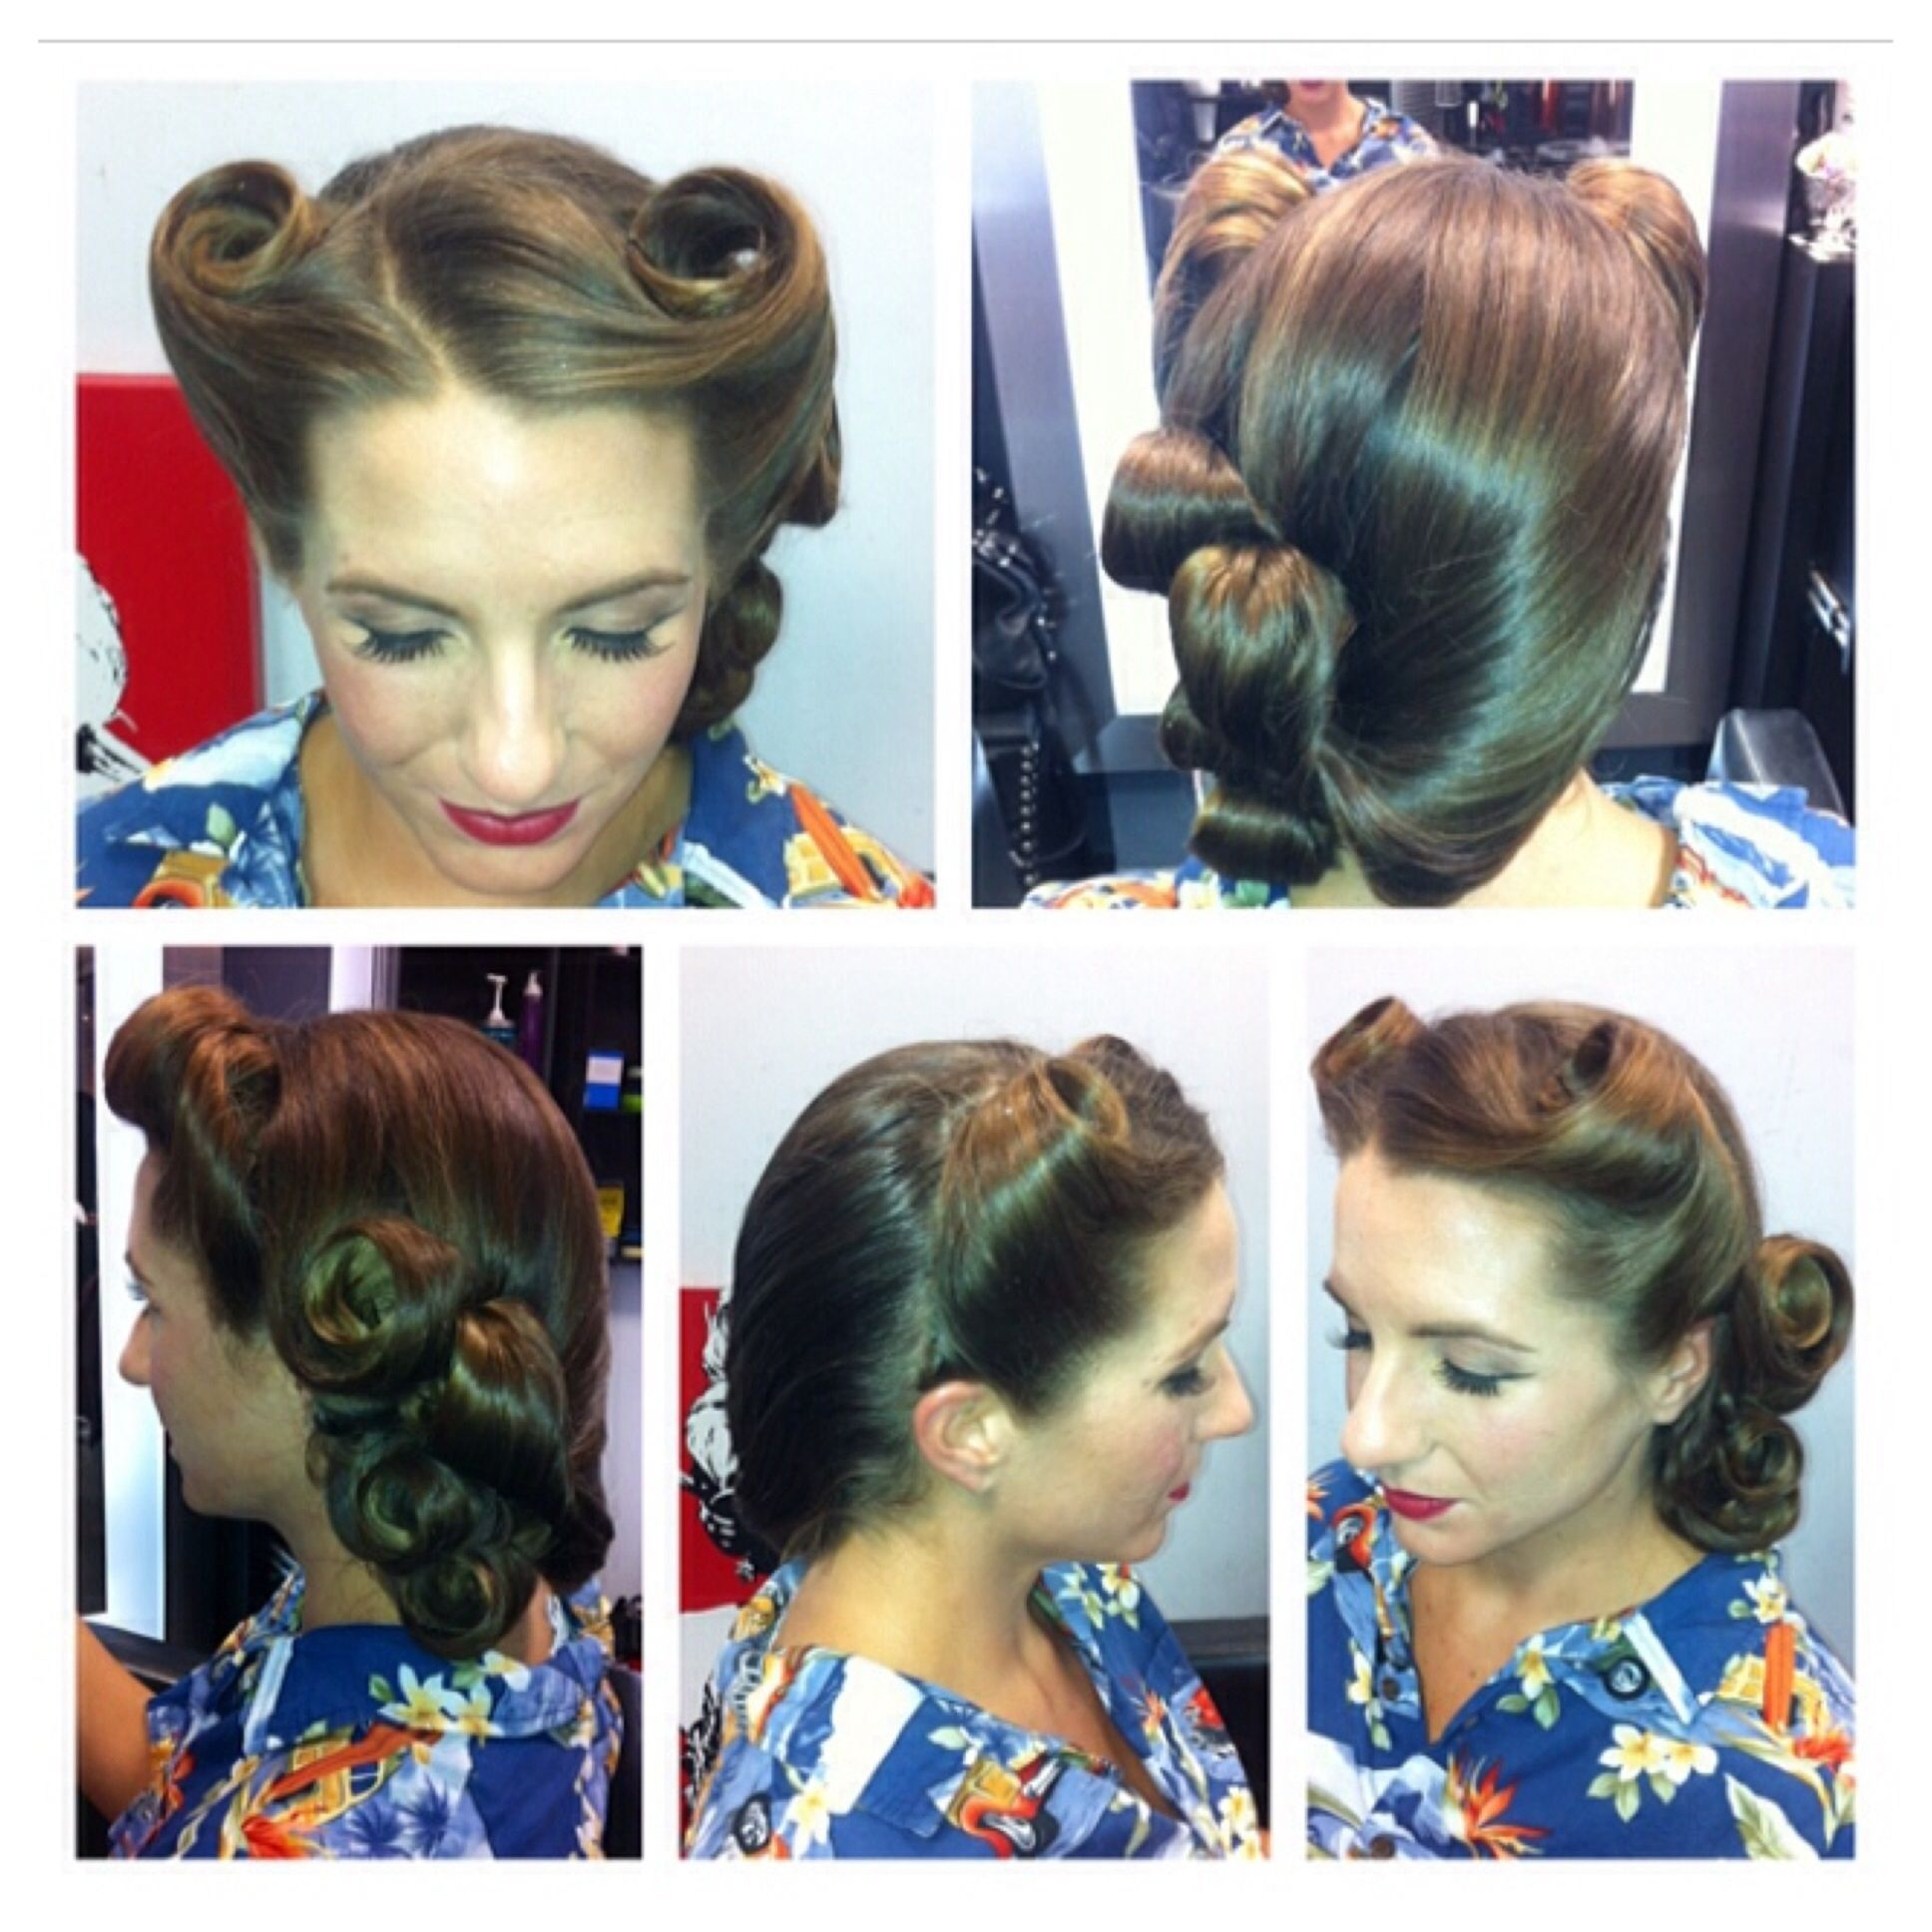 vintage hairstyle vintage updo restro hairstyle 50s hair